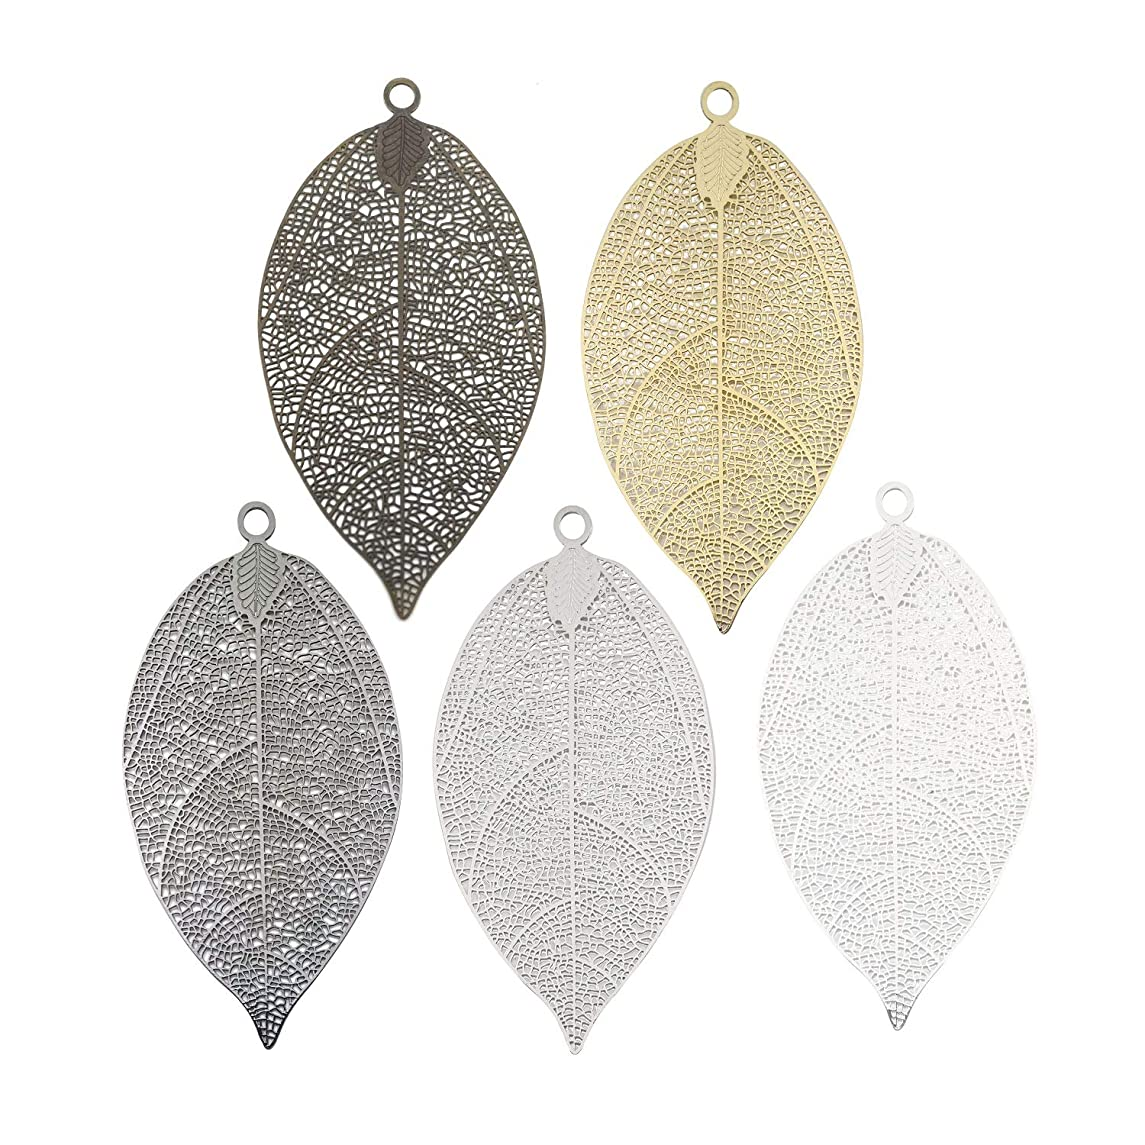 iloveDIYbeads Craft Supplies 5pcs Mixed Leaf Charms Bookmark Charms Pendants for Crafting, Jewelry Findings Making Accessory for DIY Necklace Bracelet M244